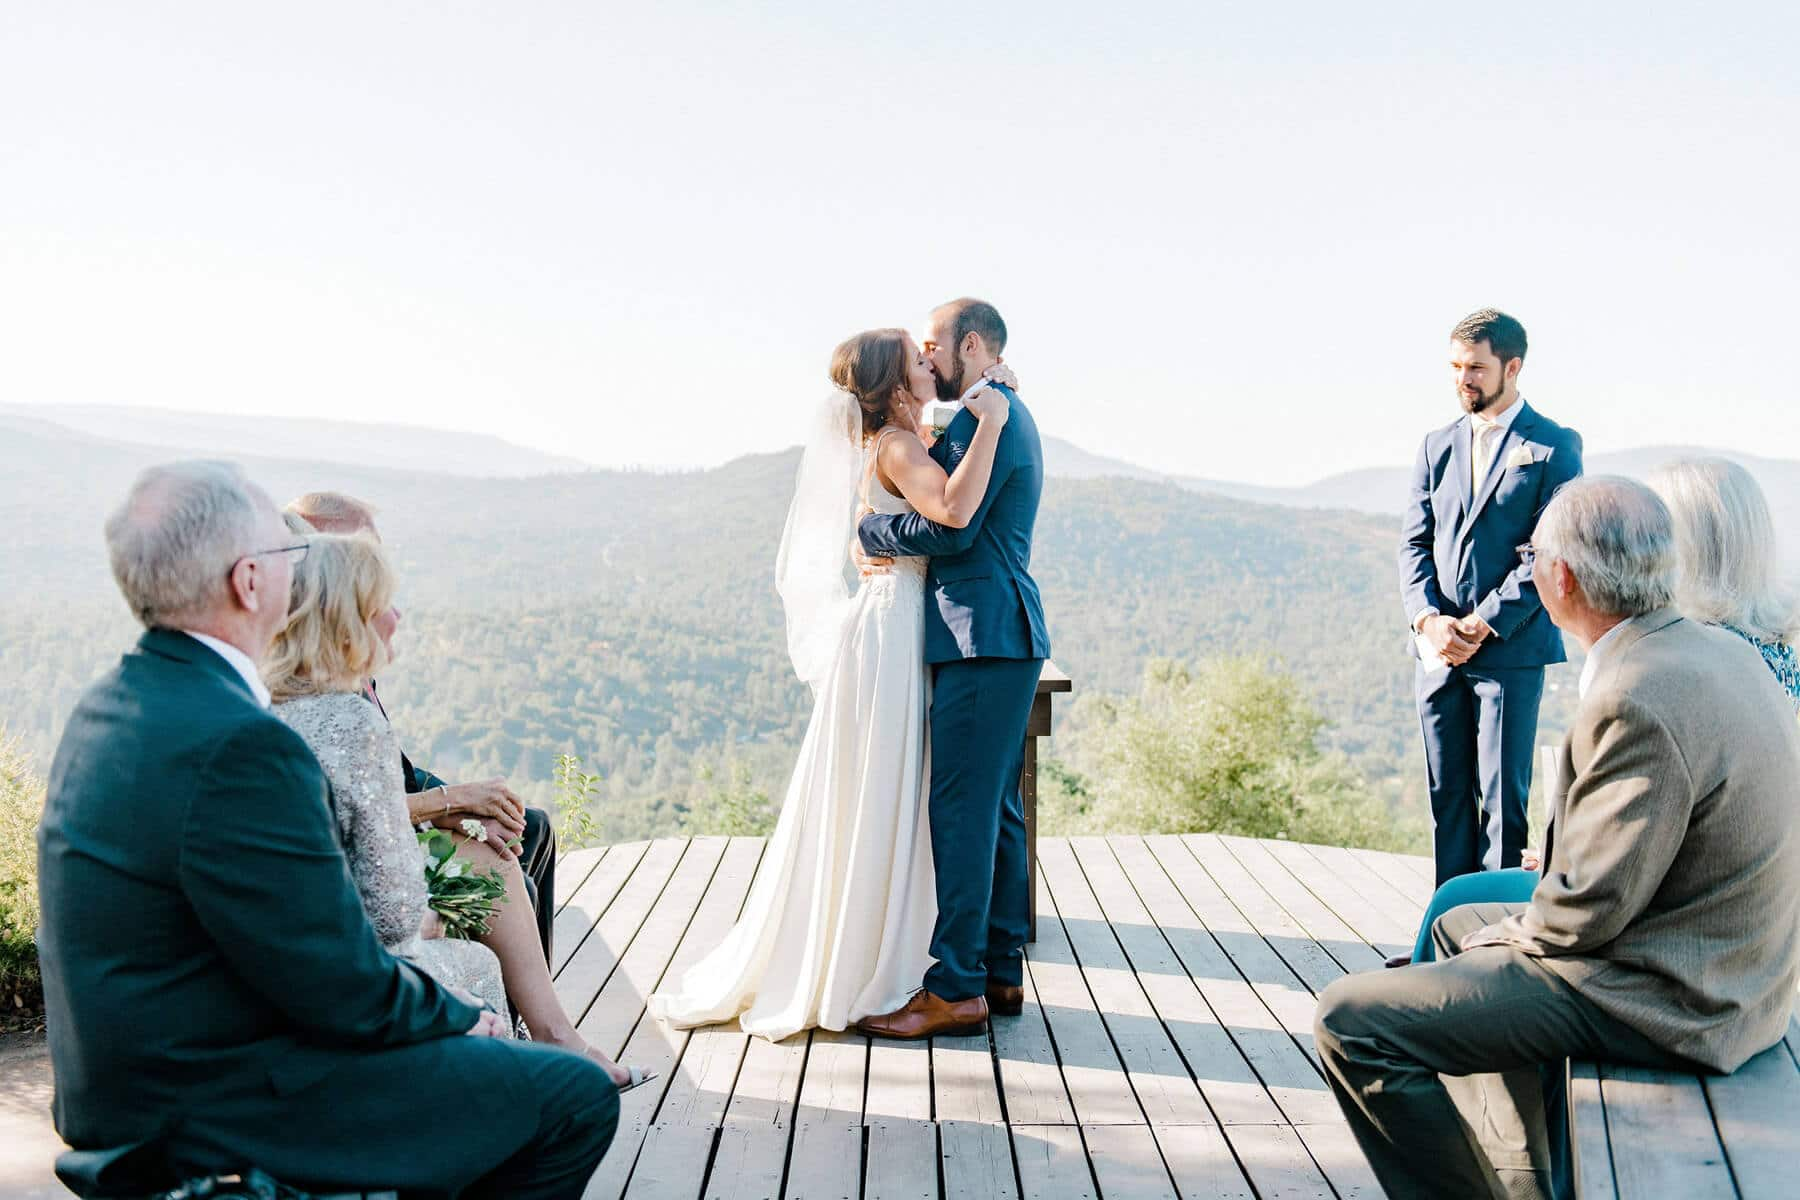 bride and groom kissing on balcony during intimate wedding ceremony in oakhurst